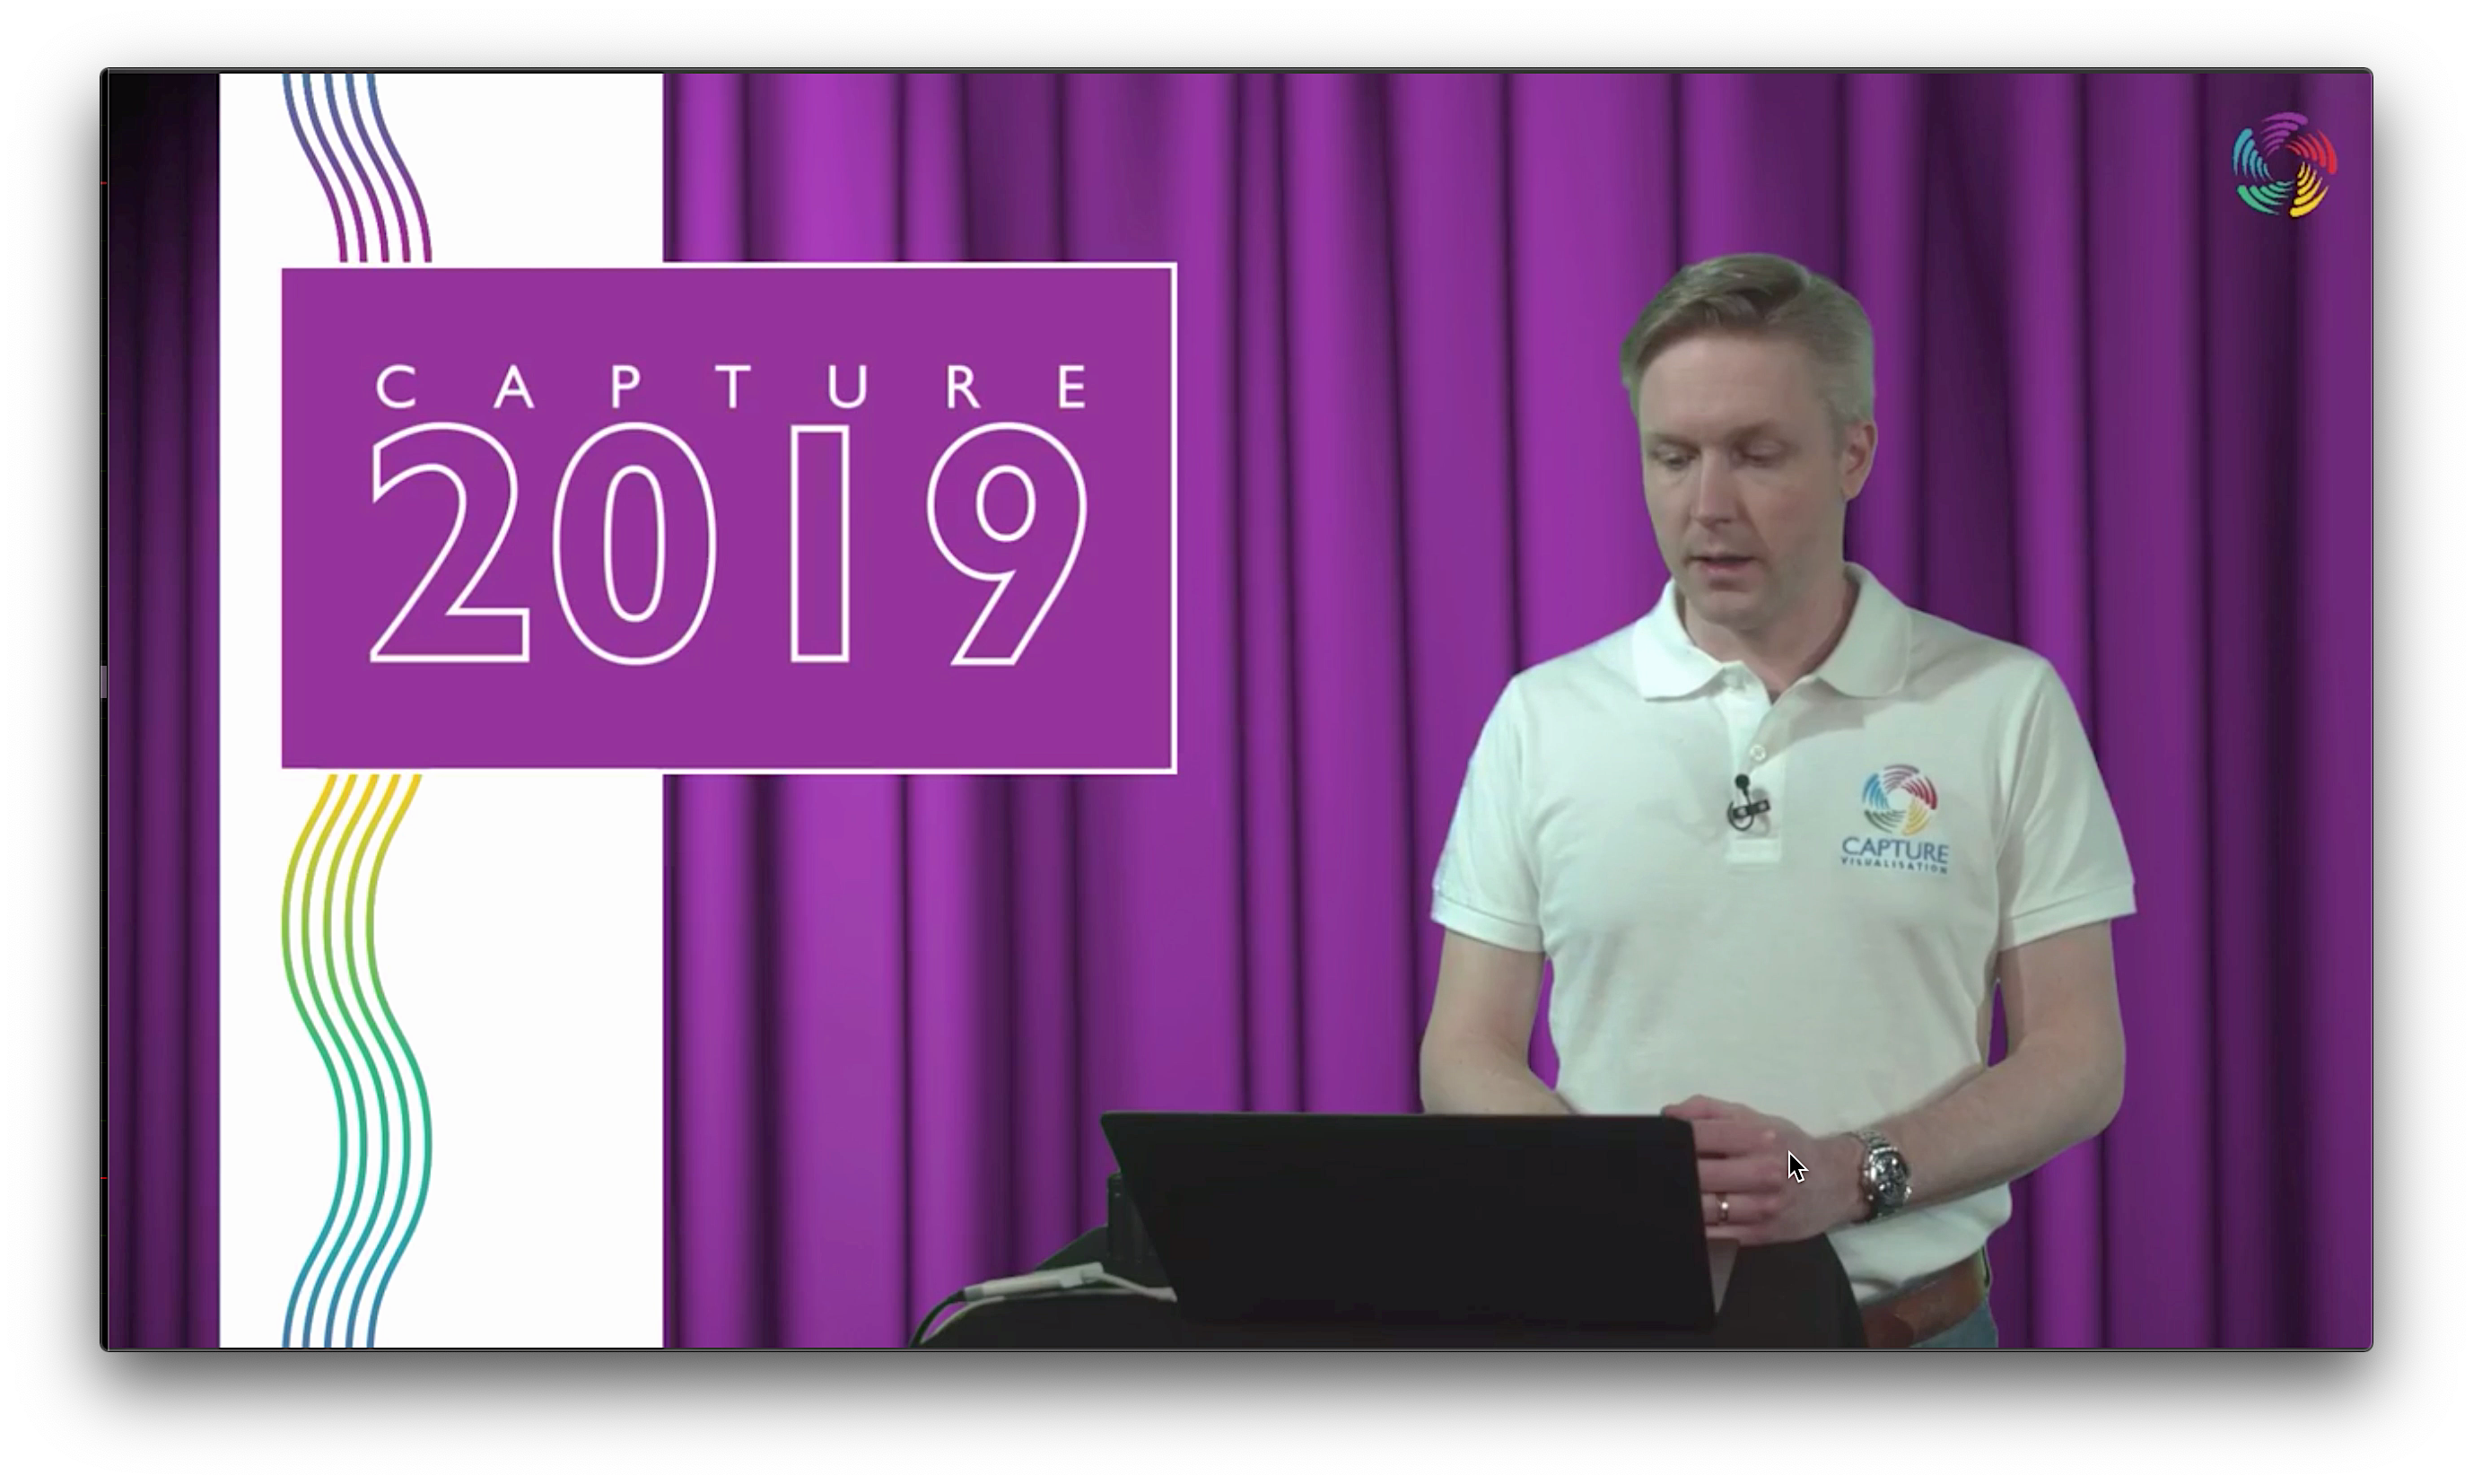 capture_2019_fb_live